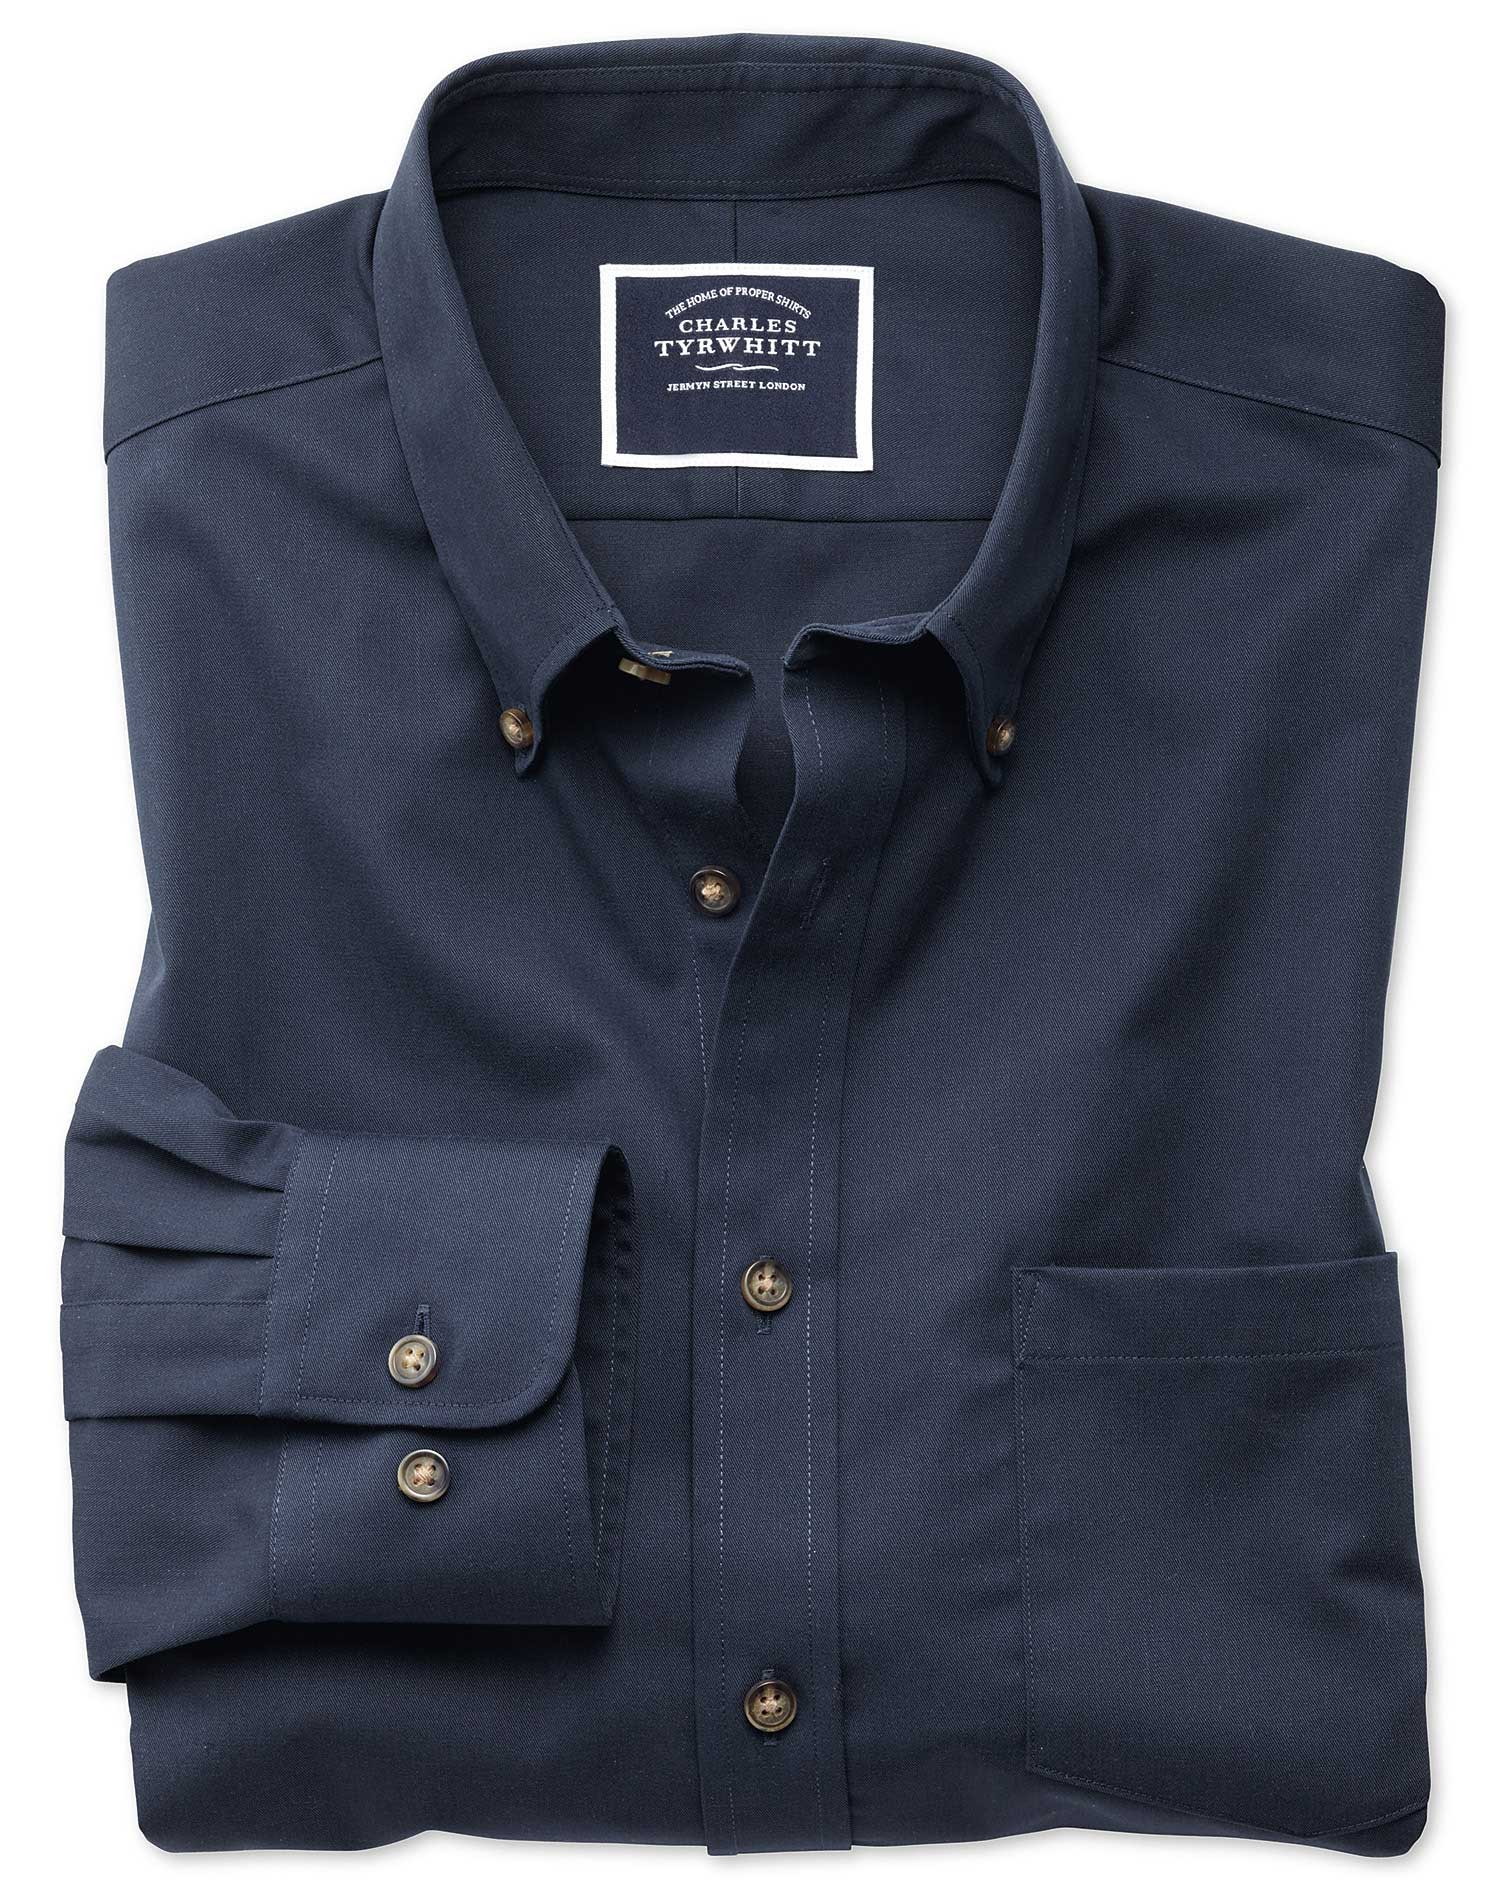 Slim Fit Button-Down Non-Iron Twill Navy Blue Cotton Shirt Single Cuff Size Large by Charles Tyrwhit